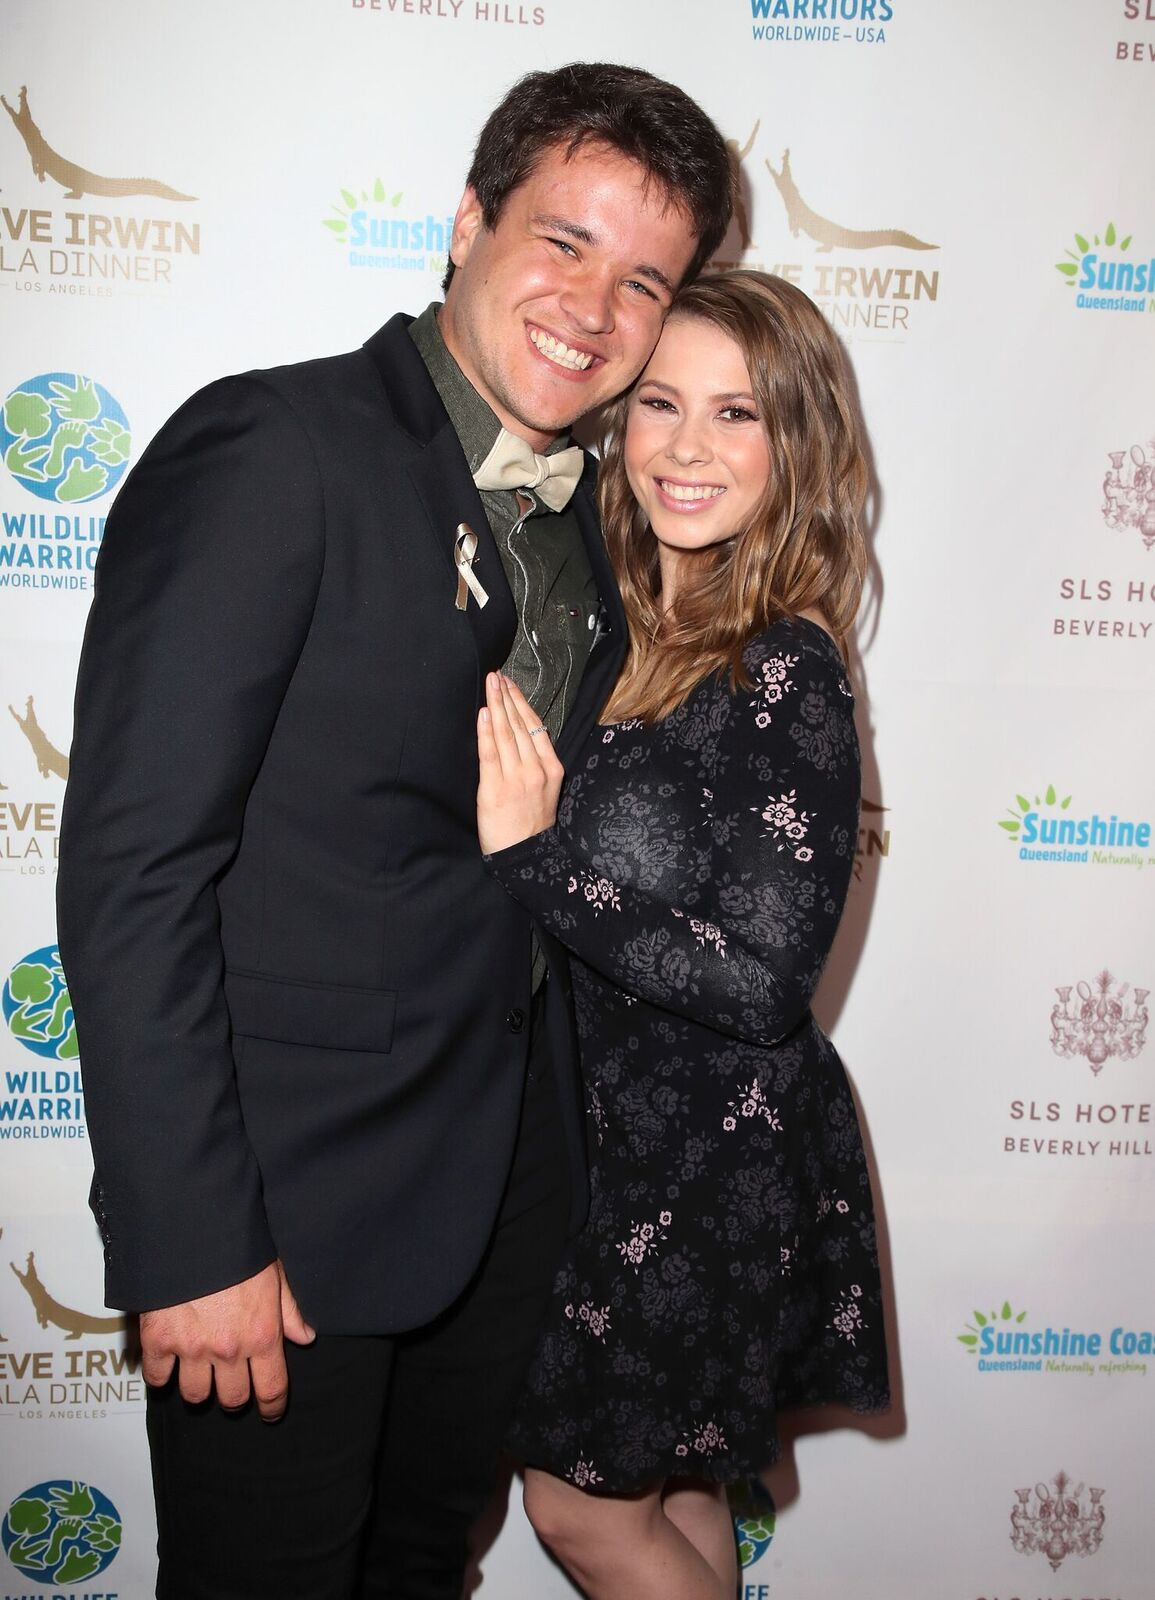 Chandler Powell and Bindi Irwin at the Steve Irwin Gala Dinner held at the SLS Hotel on May 5, 2018, in Beverly Hills, California | Photo: David Livingston/Getty Images